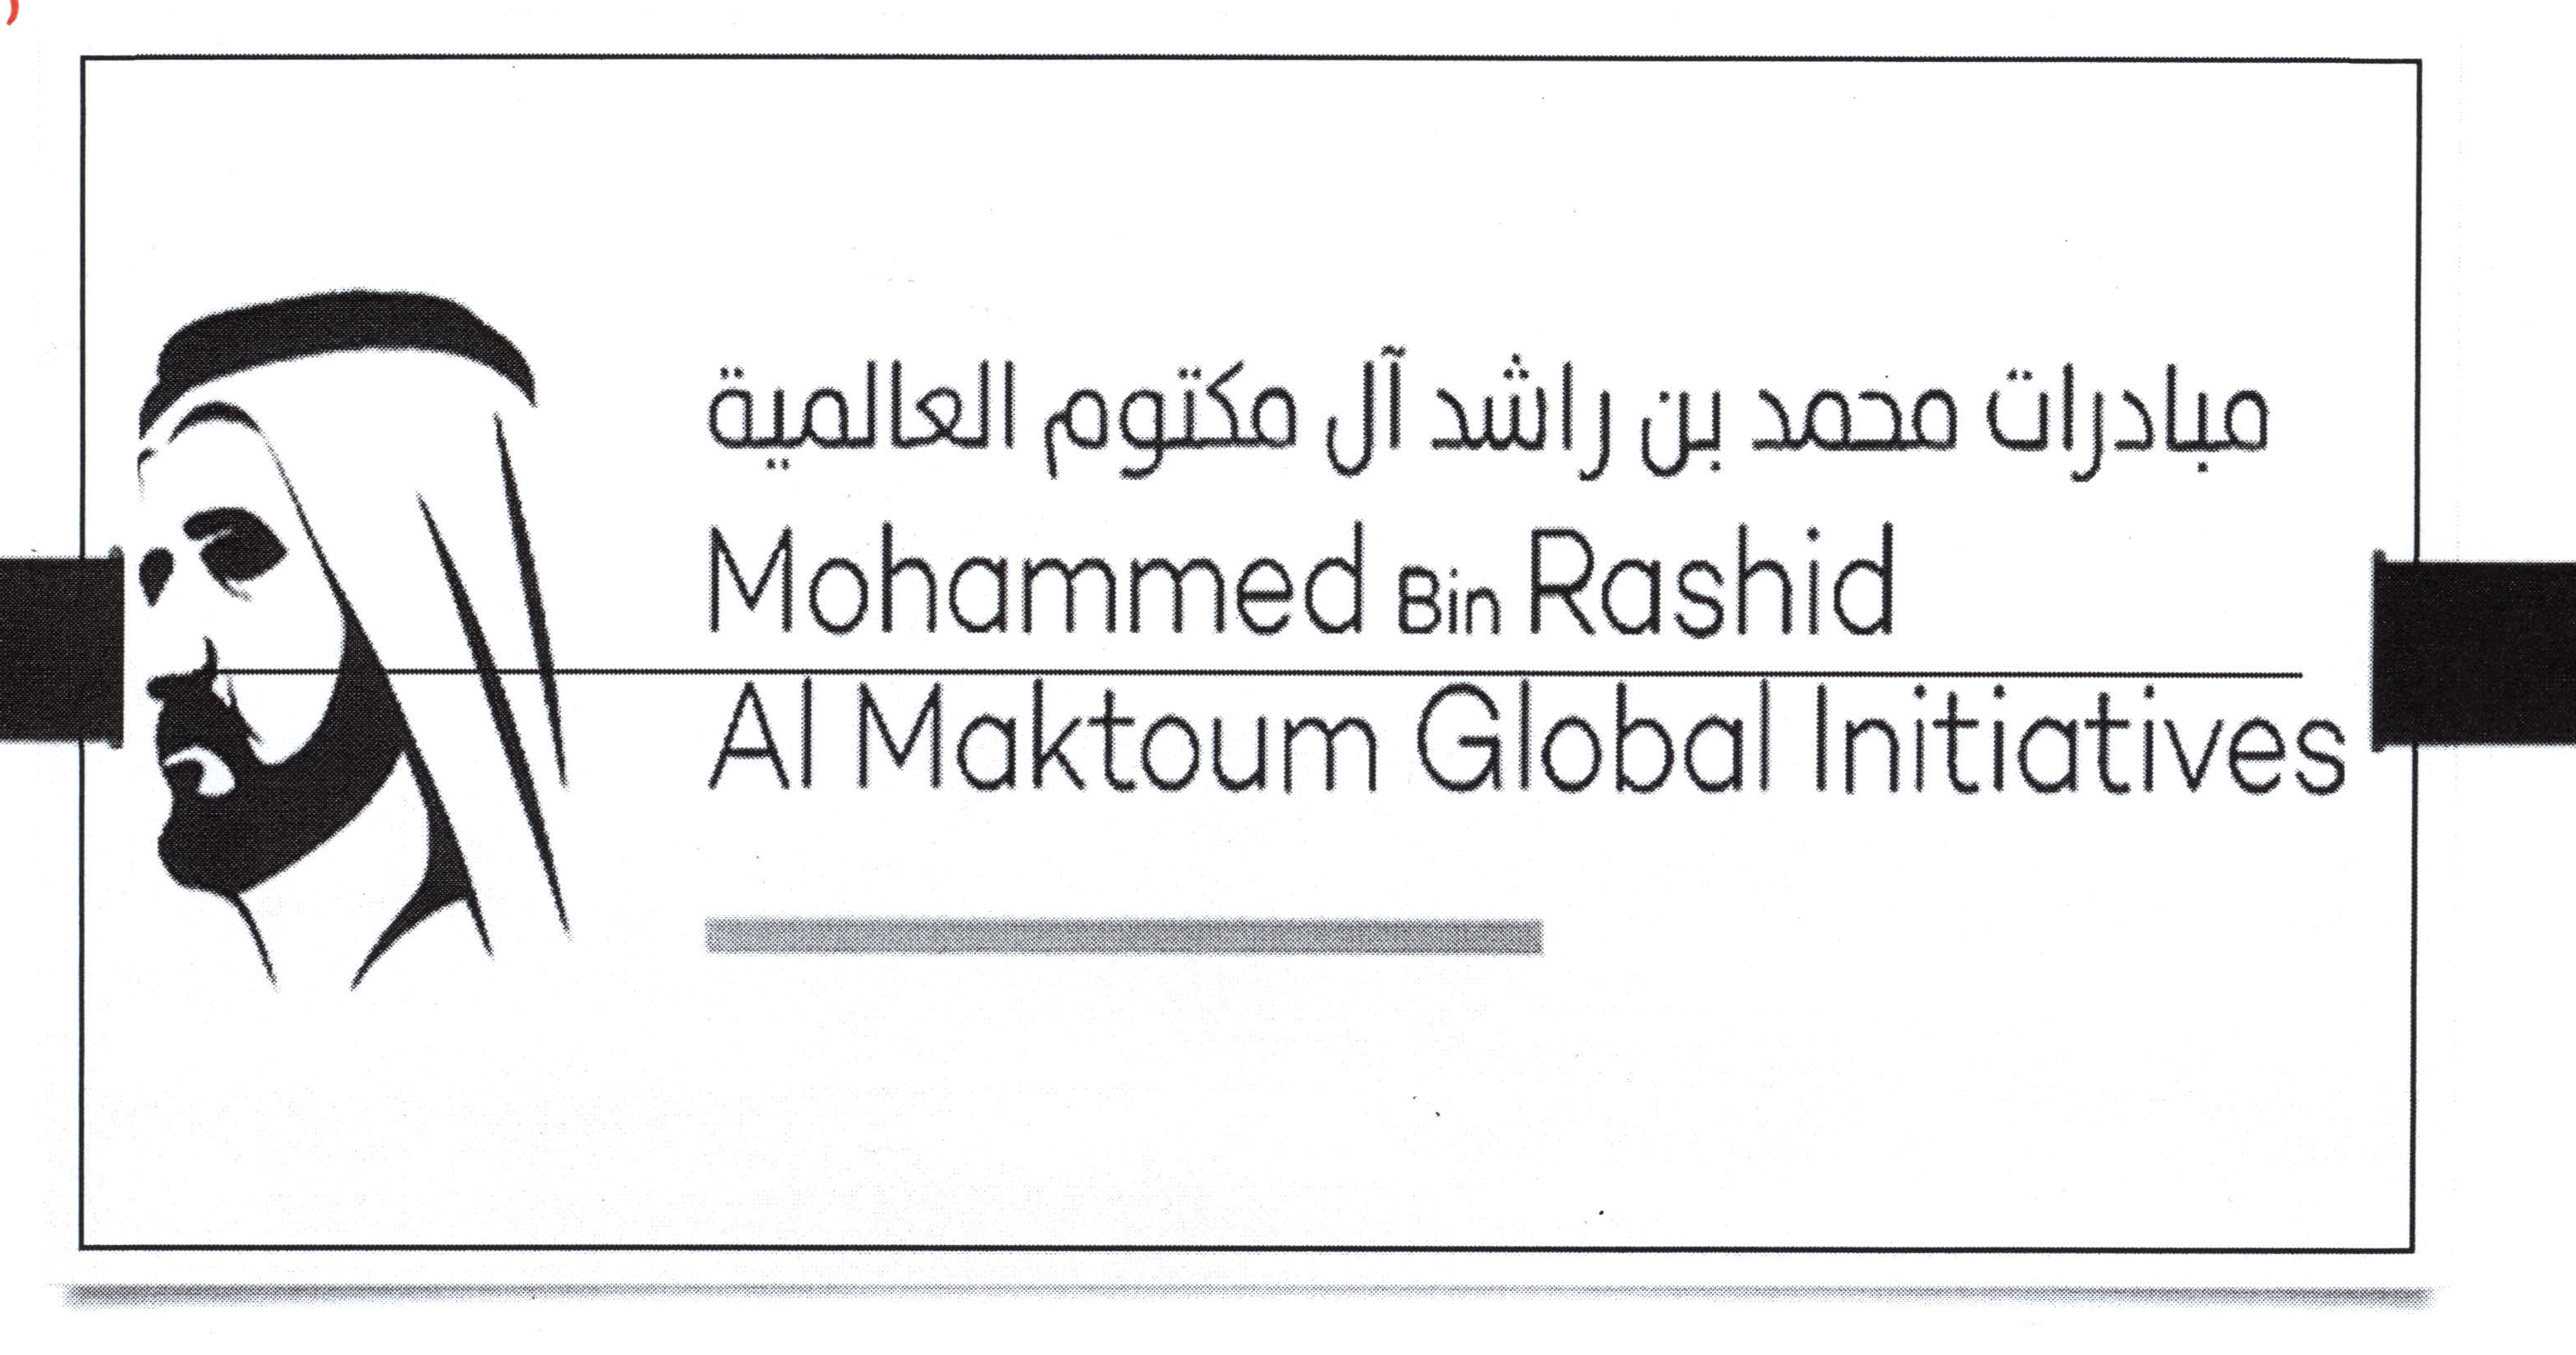 Mohammed Bin Rashid Al Maktoum International Initiatives